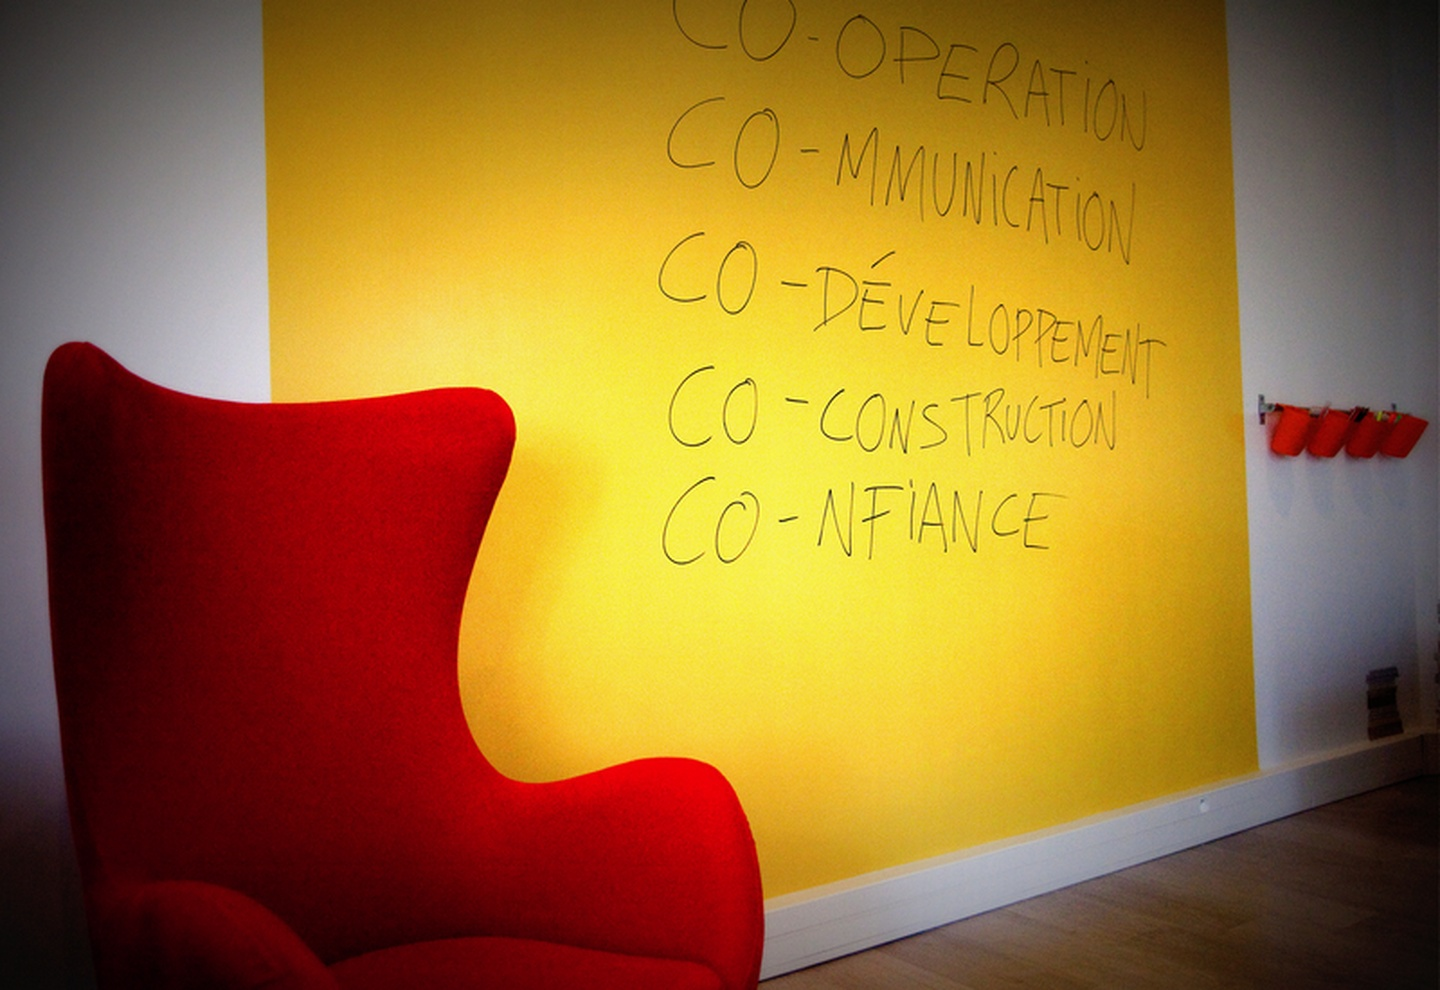 Paris conference rooms Coworking space Espace co image 2